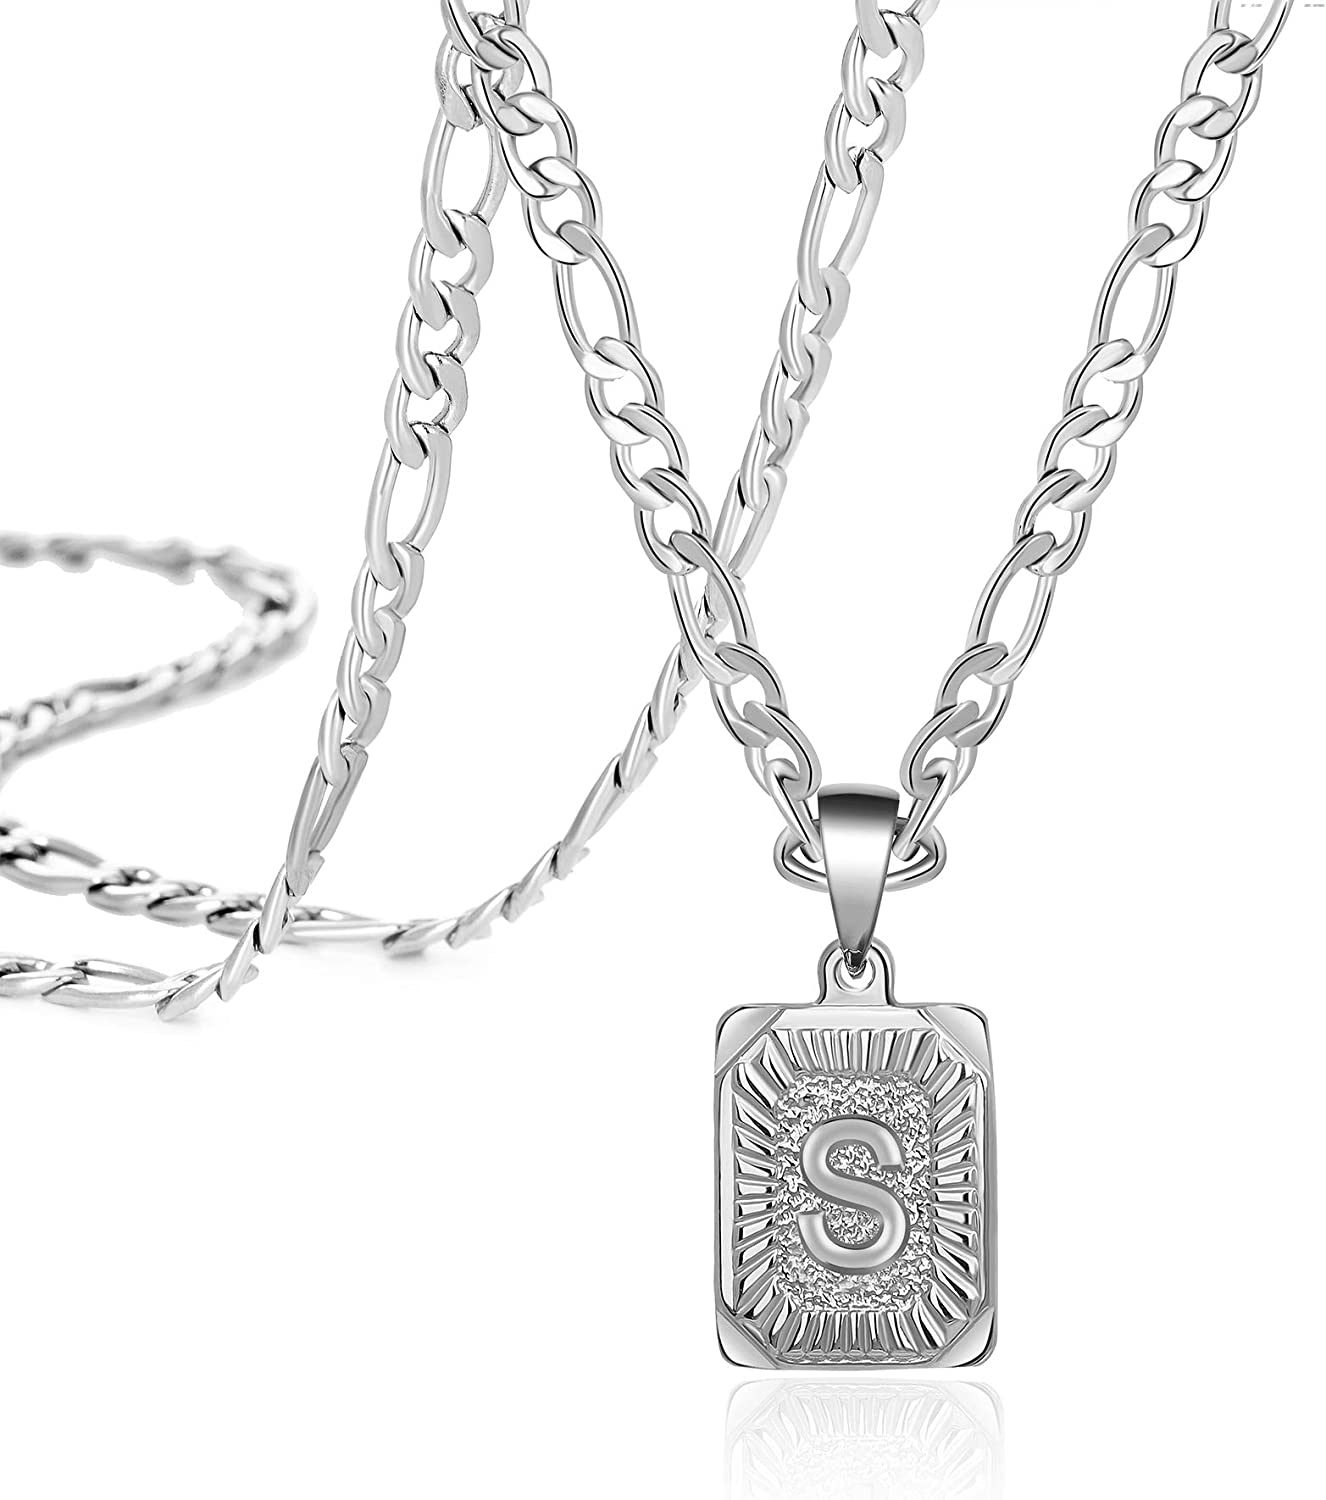 Max 79% OFF Stainless Steel Initial Letter Necklace Max 66% OFF Personalized 26 Pendant